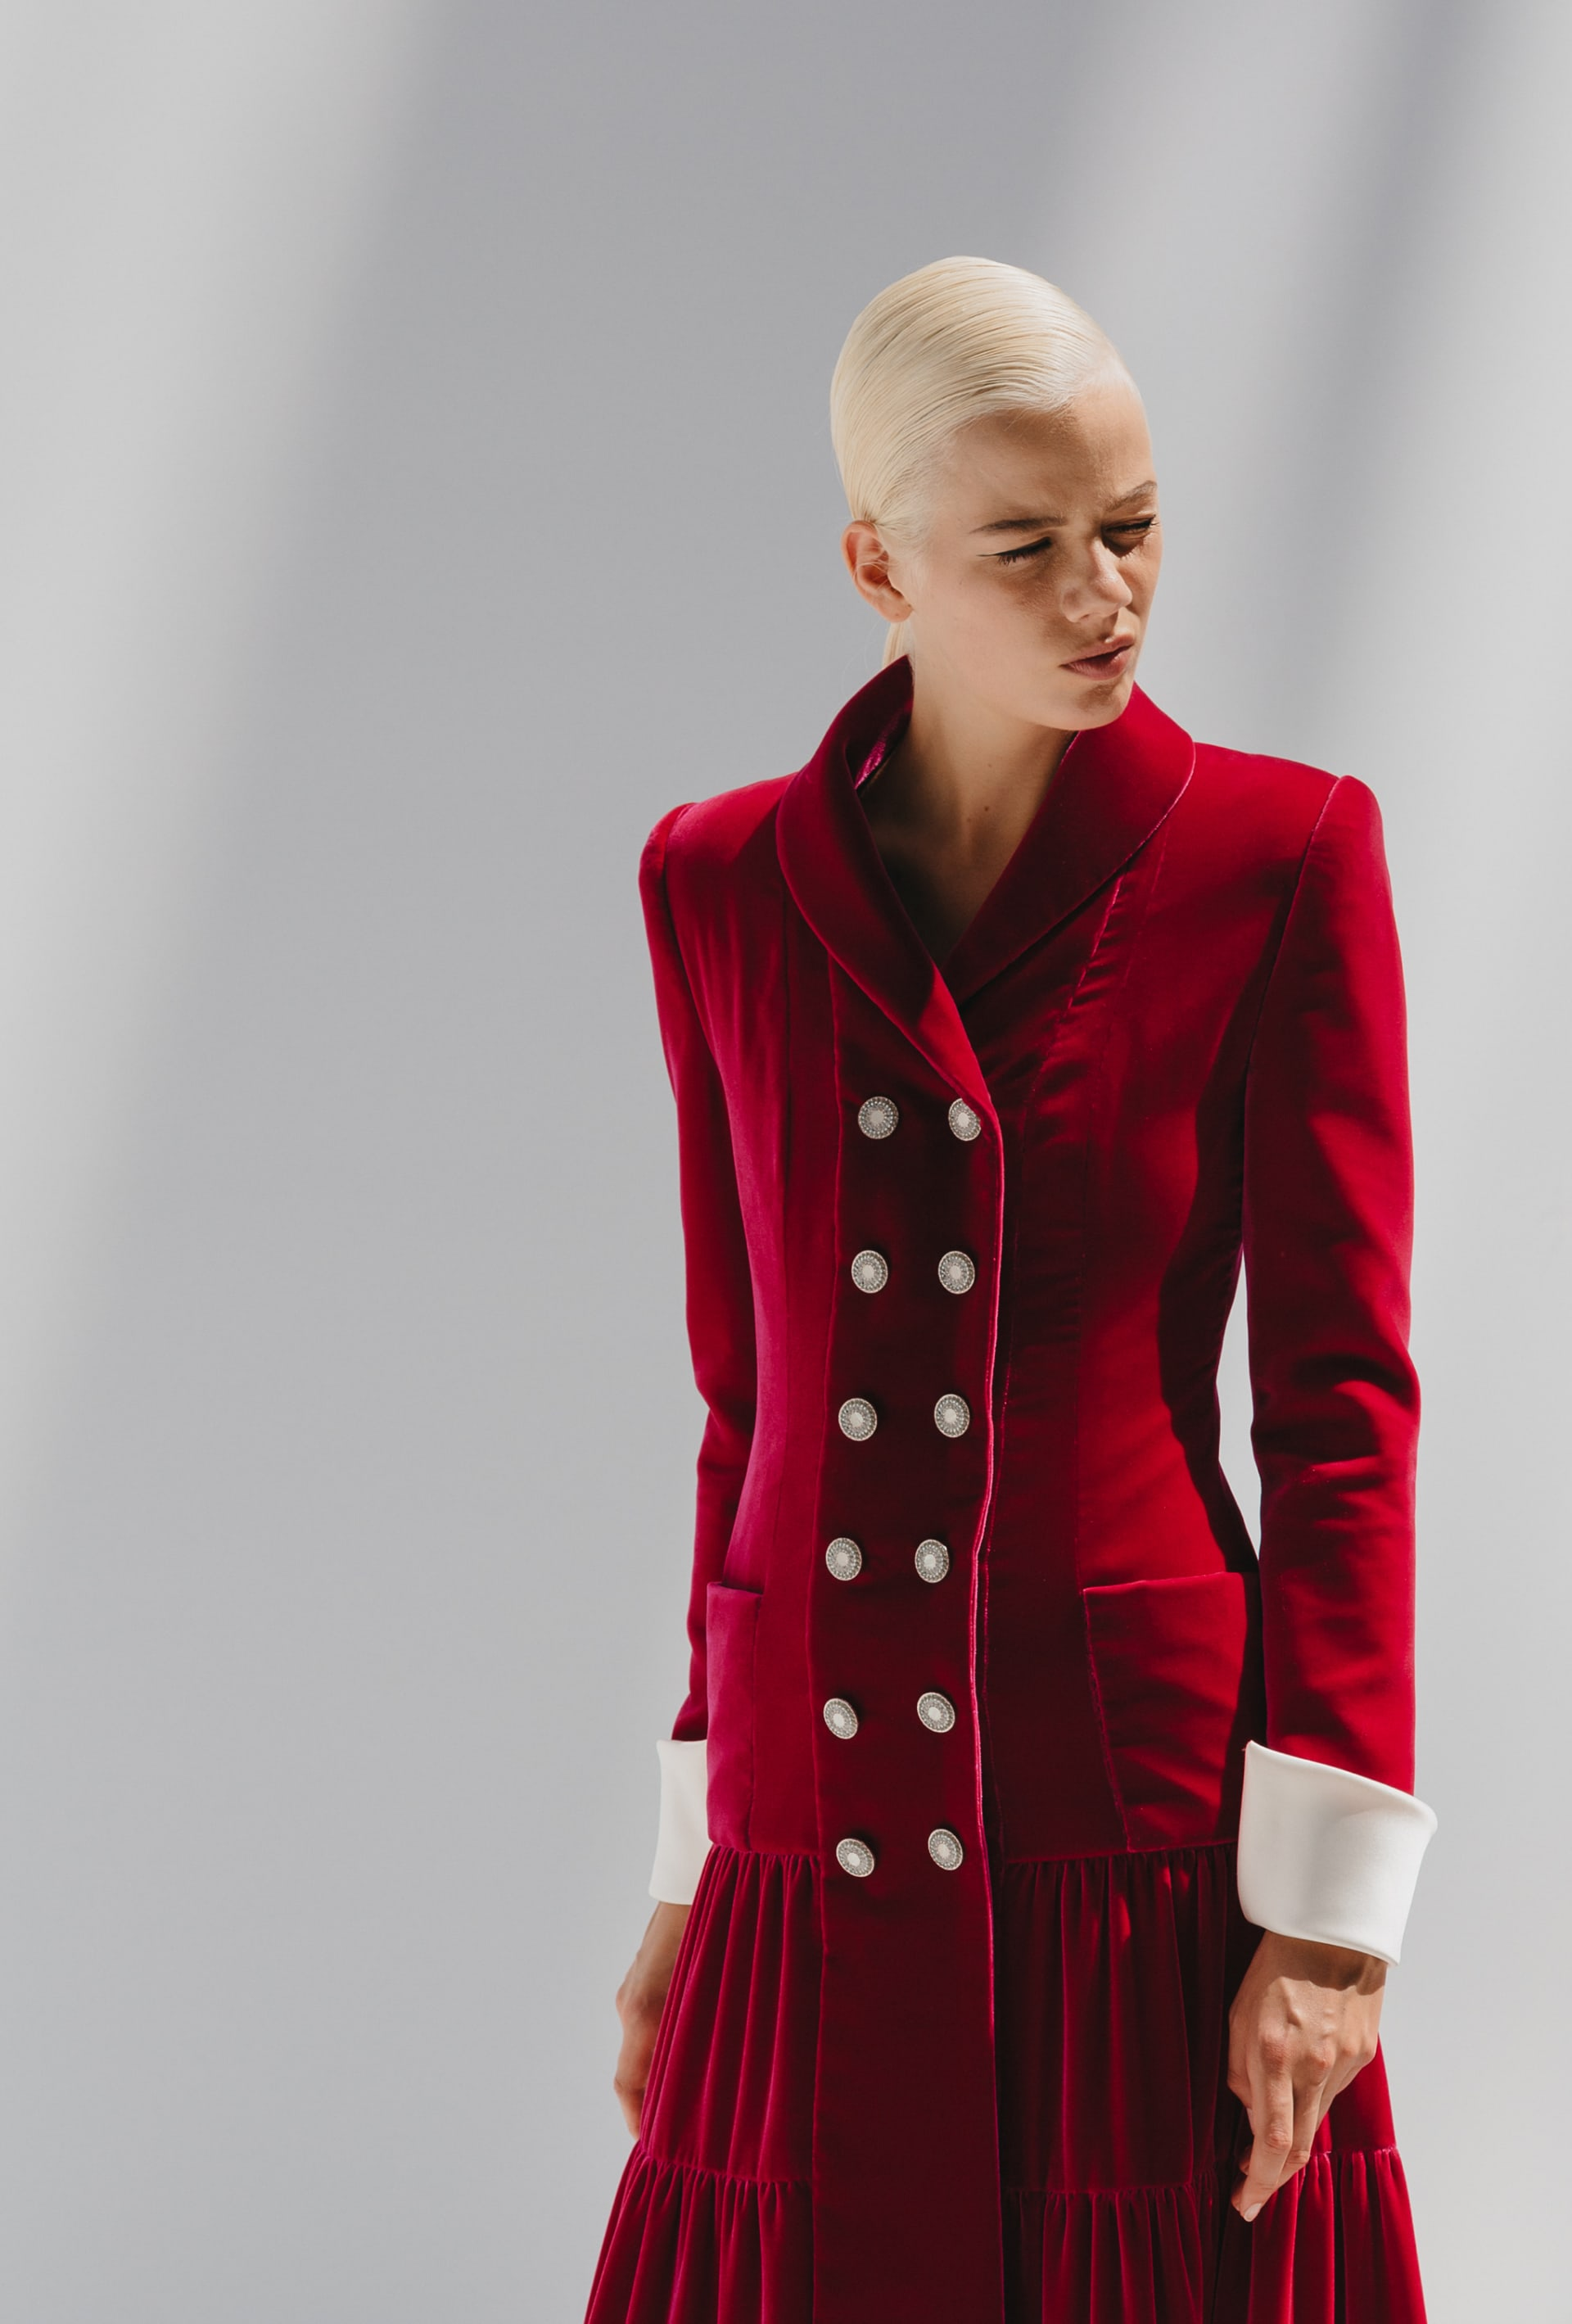 View 2 - Look 52 - Fall-Winter 2019/20 Haute-Couture - see full sized version